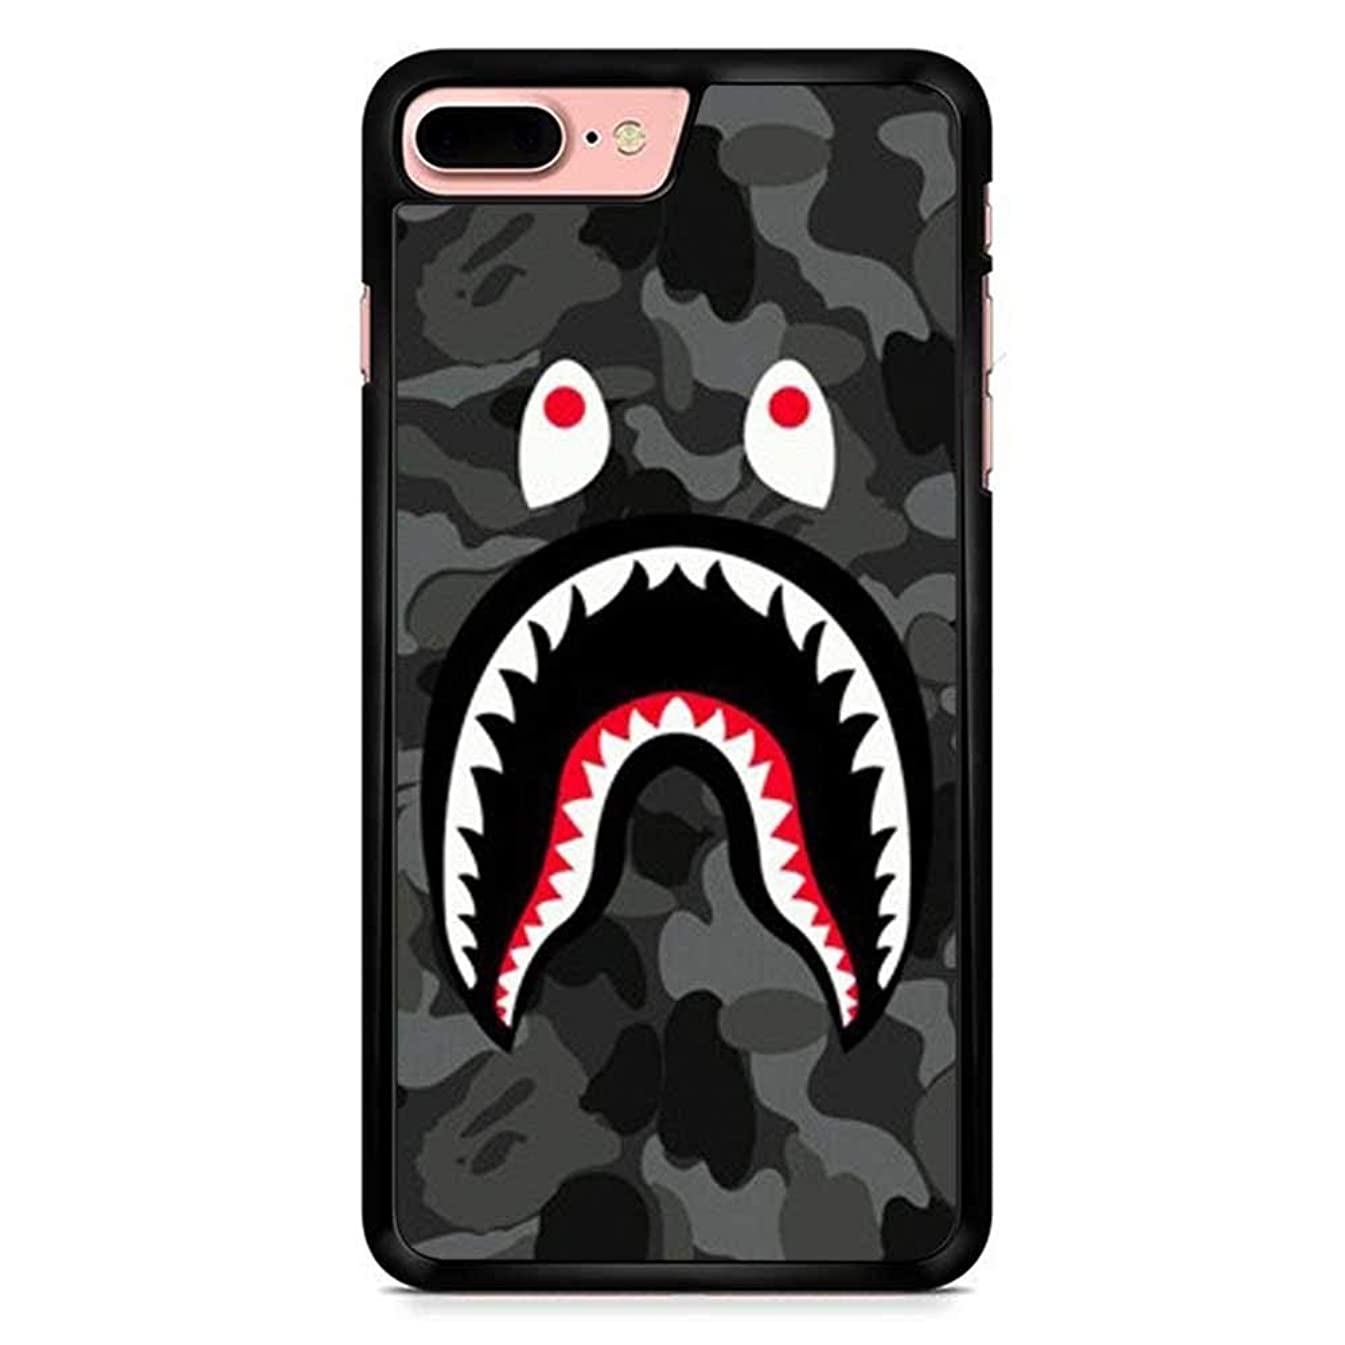 iPhone 7 Plus Case, iPhone 8 Plus Covers, BapeShark Logo on Red Camo Background Hard Cases Cover for iPhone 7 8 Plus 5.5 inches (Red) (Black)